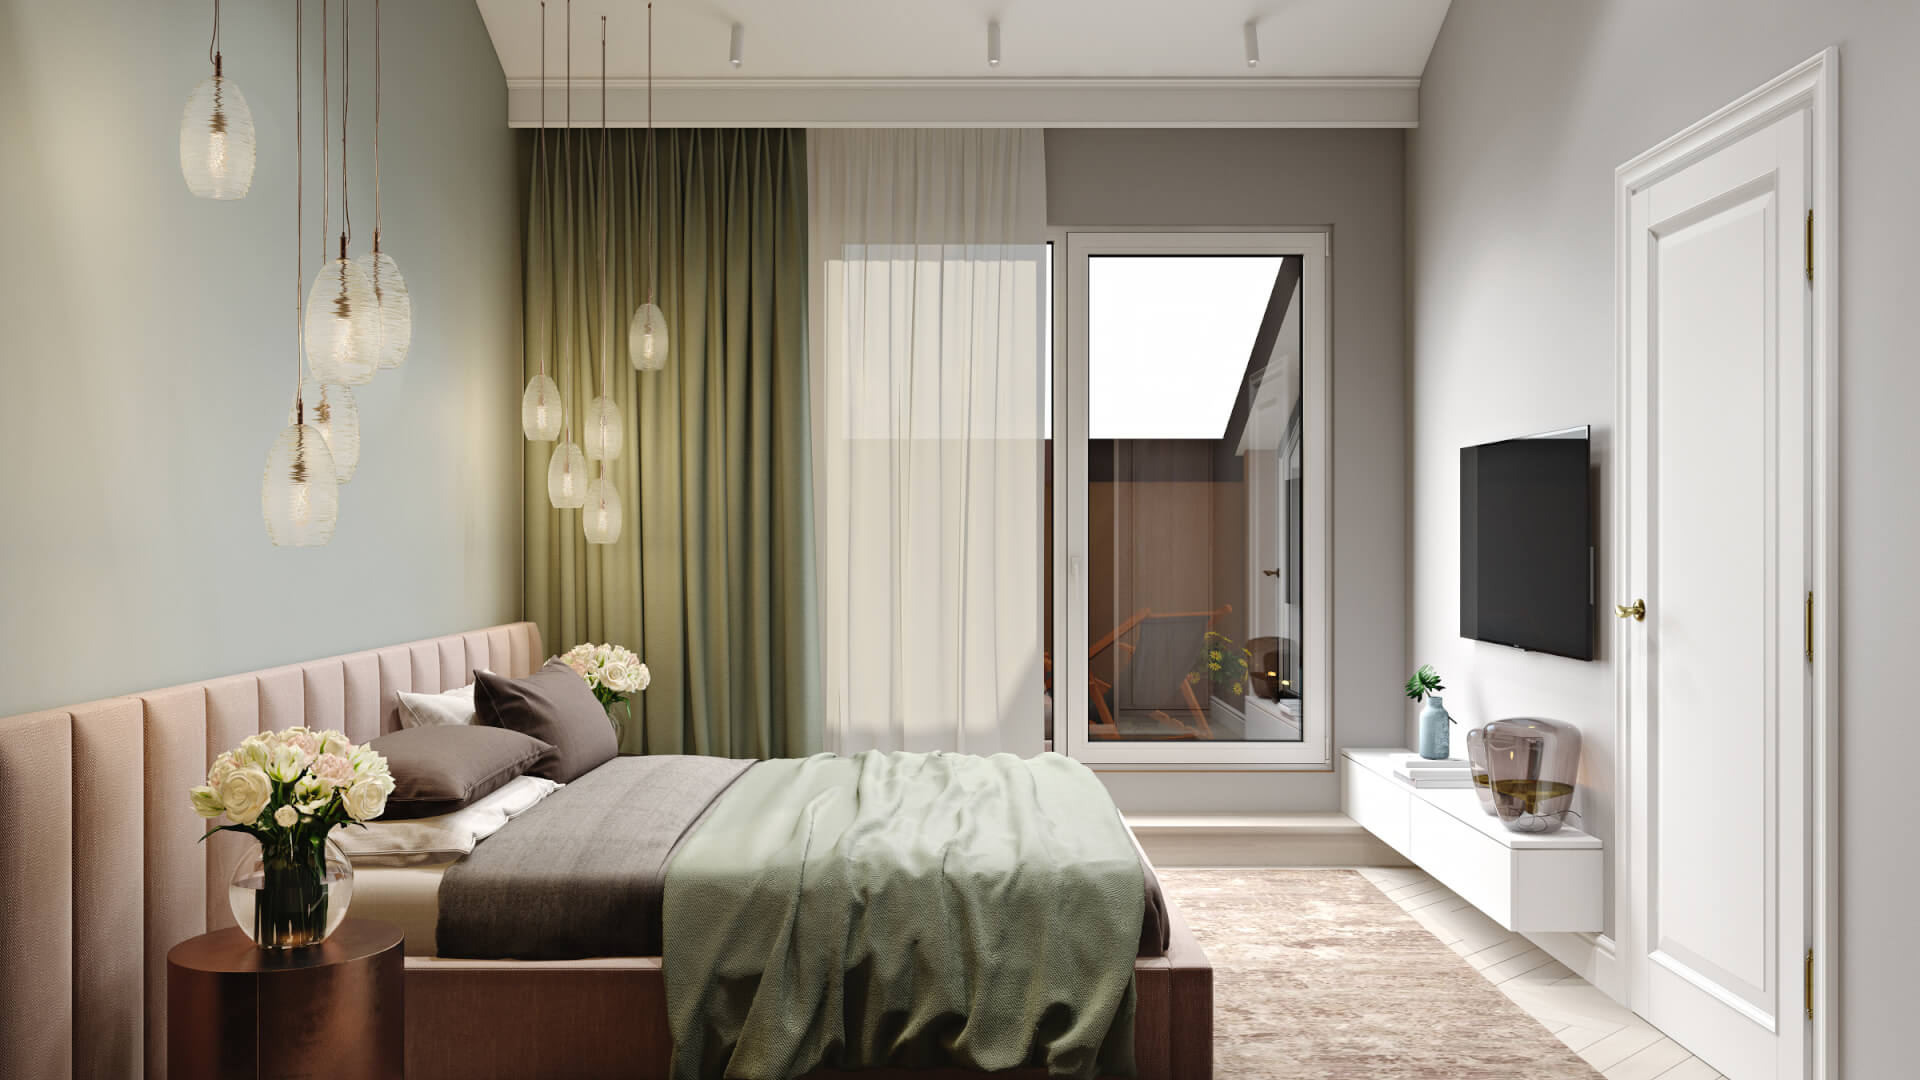 JK_Biliy_Shokolad_Bedroom_2_et_KN_02_View03